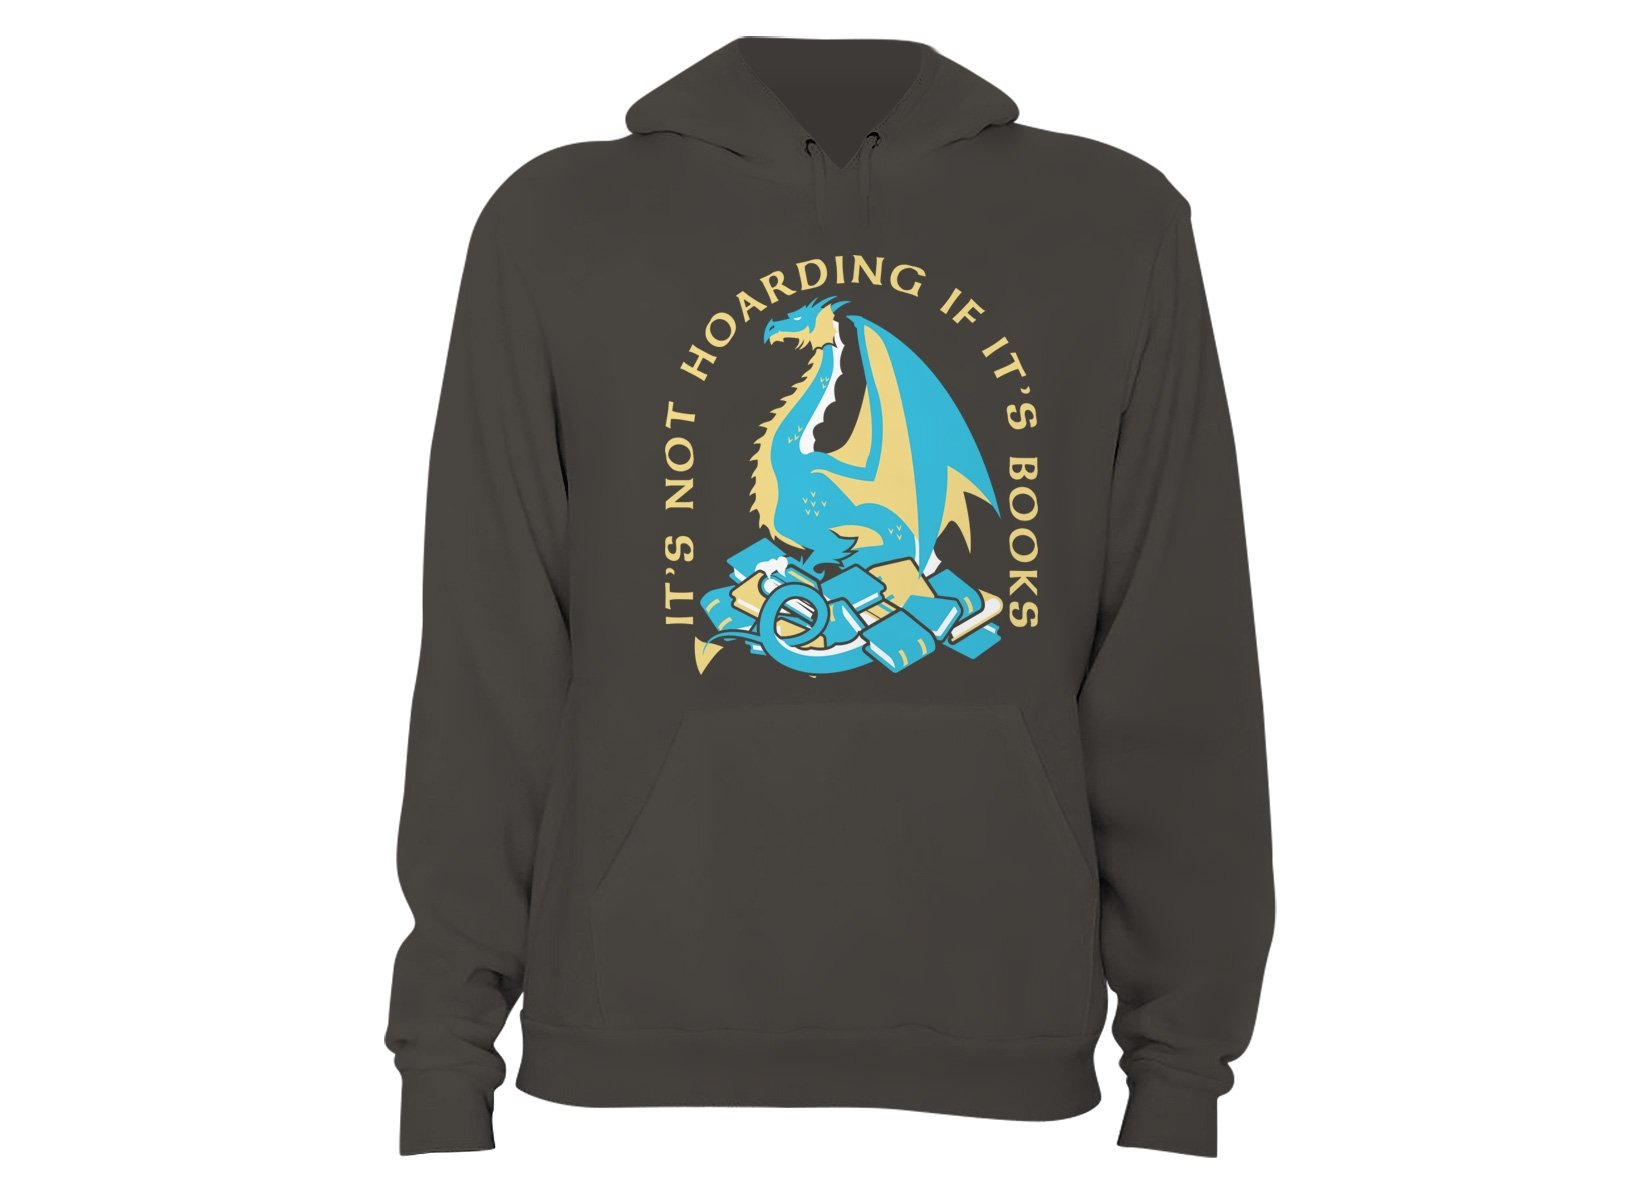 It's Not Hoarding If It's Books on Hoodie